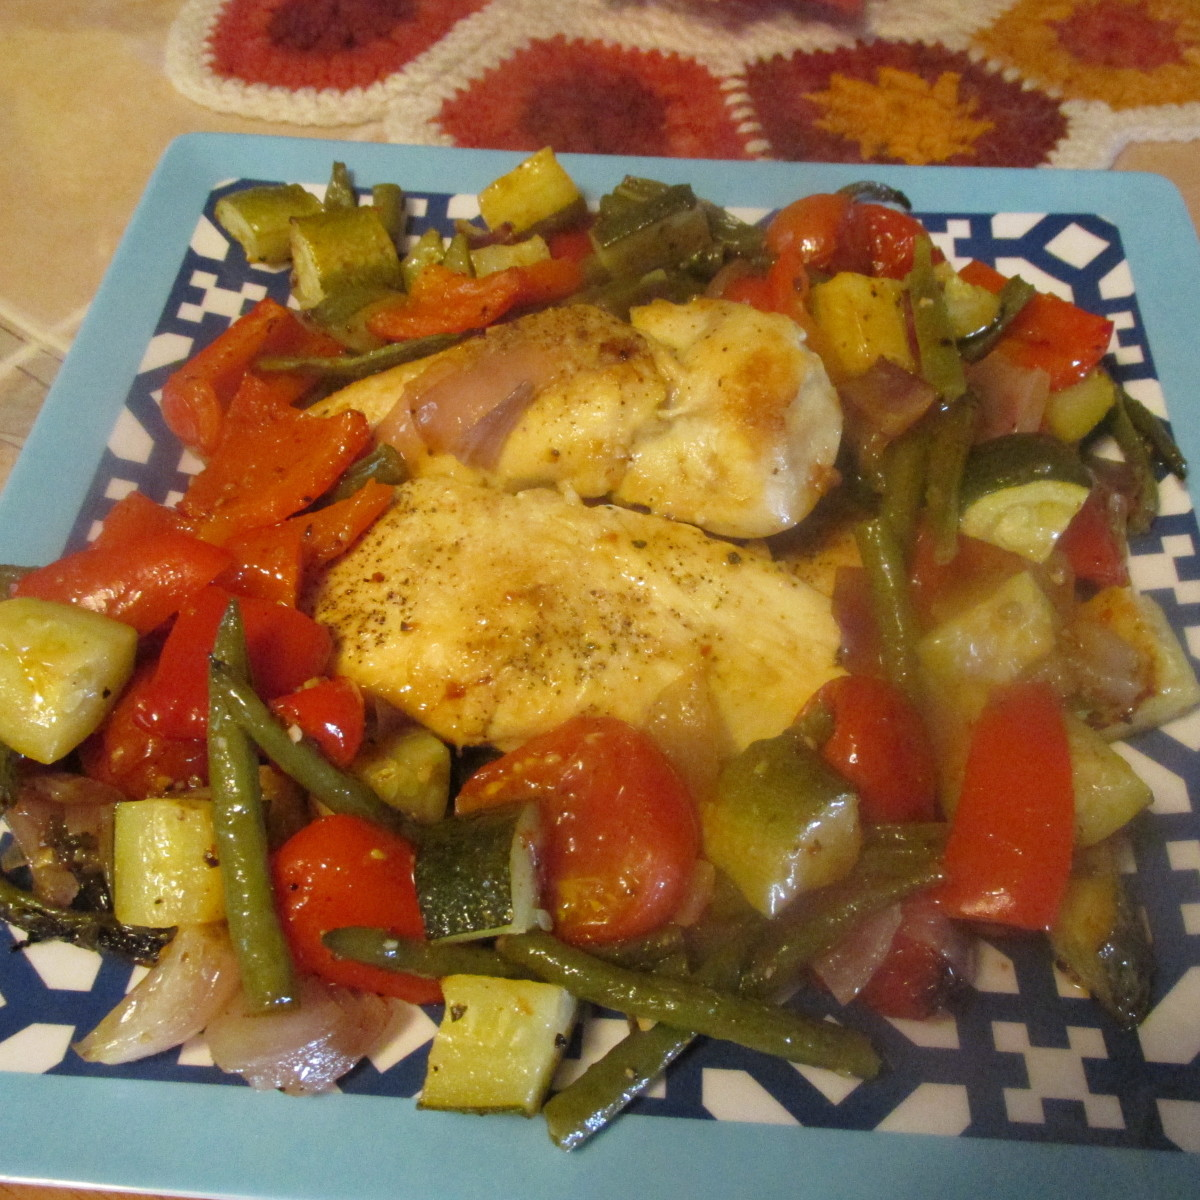 Pan-roasted chicken with savory summer vegetables